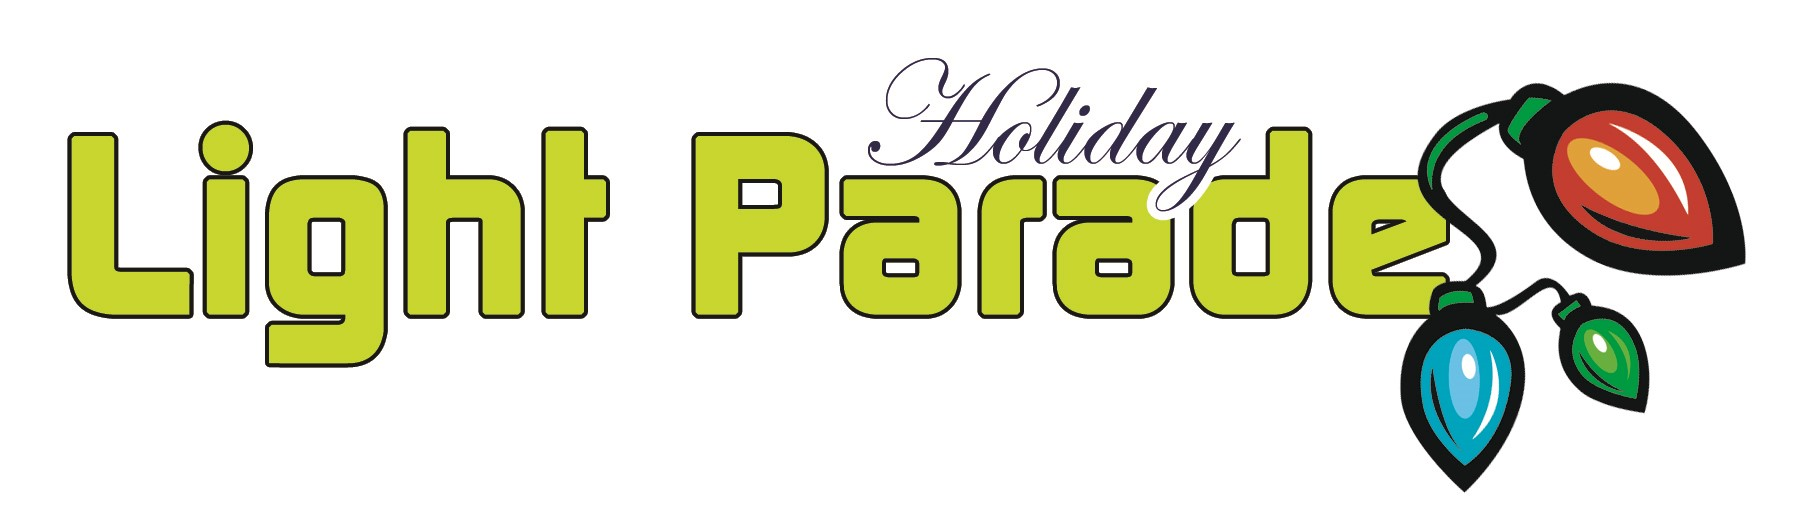 Light Parade Header color.jpg